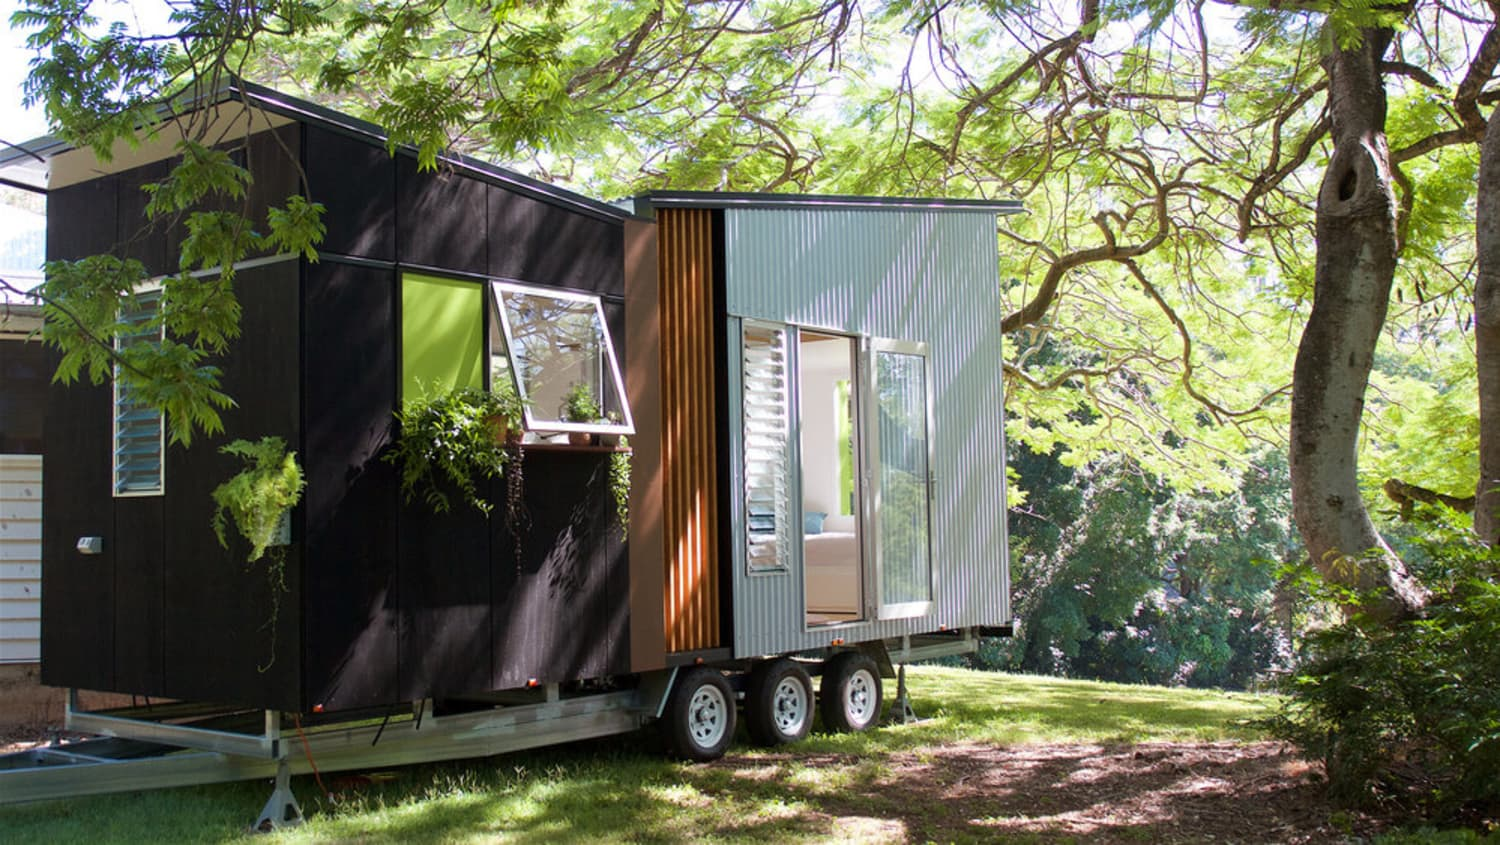 Swallowtail Is the Mid-Century Inspired Tiny House of Your Dreams